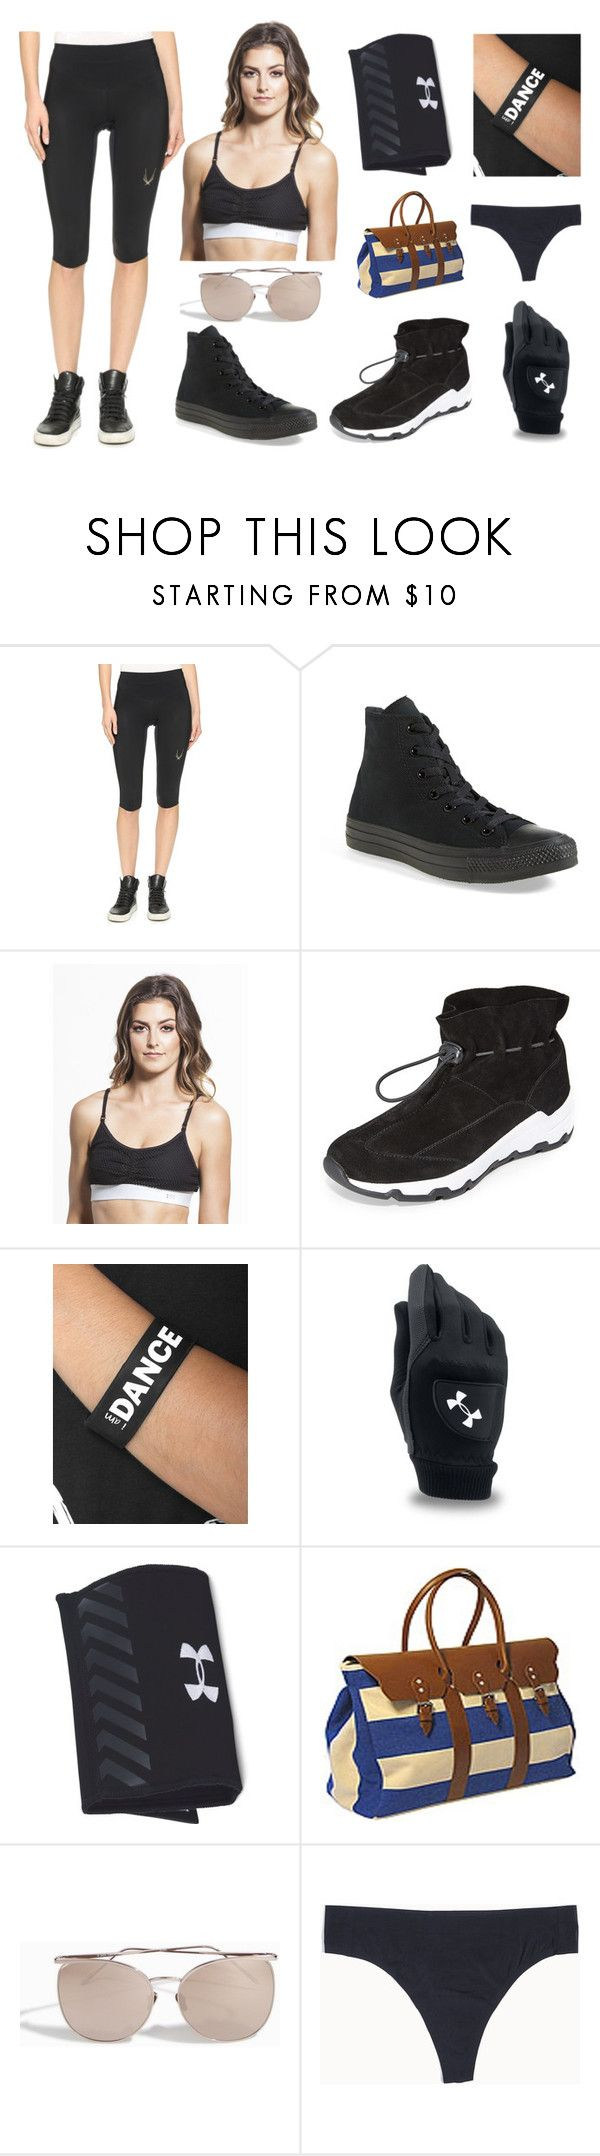 """""""Sneakers and dress"""" by gadinarmada-1 ❤ liked on Polyvore featuring Lucas Hugh, Converse, Splits59, Opening Ceremony, Peace Love World, Under Armour, Linda Farrow, Knixwear, sneakers and SNEAKERSANDDRESSES"""